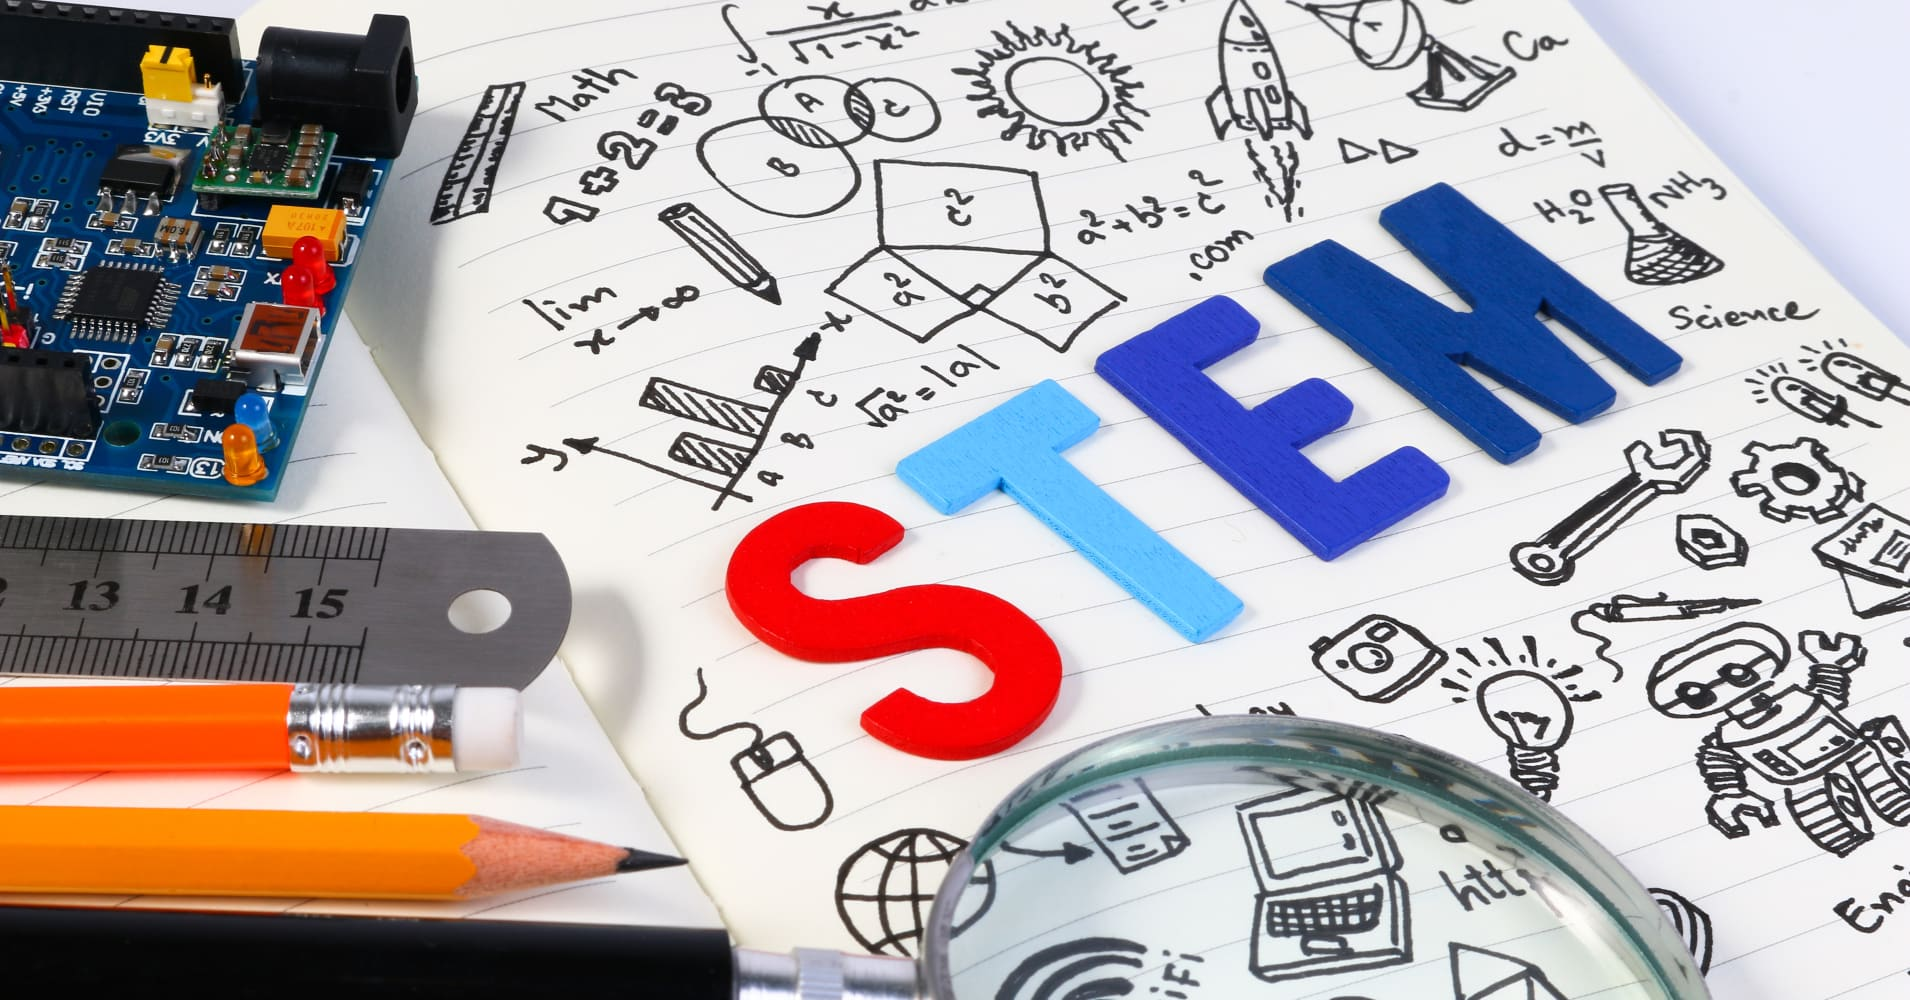 STEM education: Science, Technology, Engineering and Mathematics.